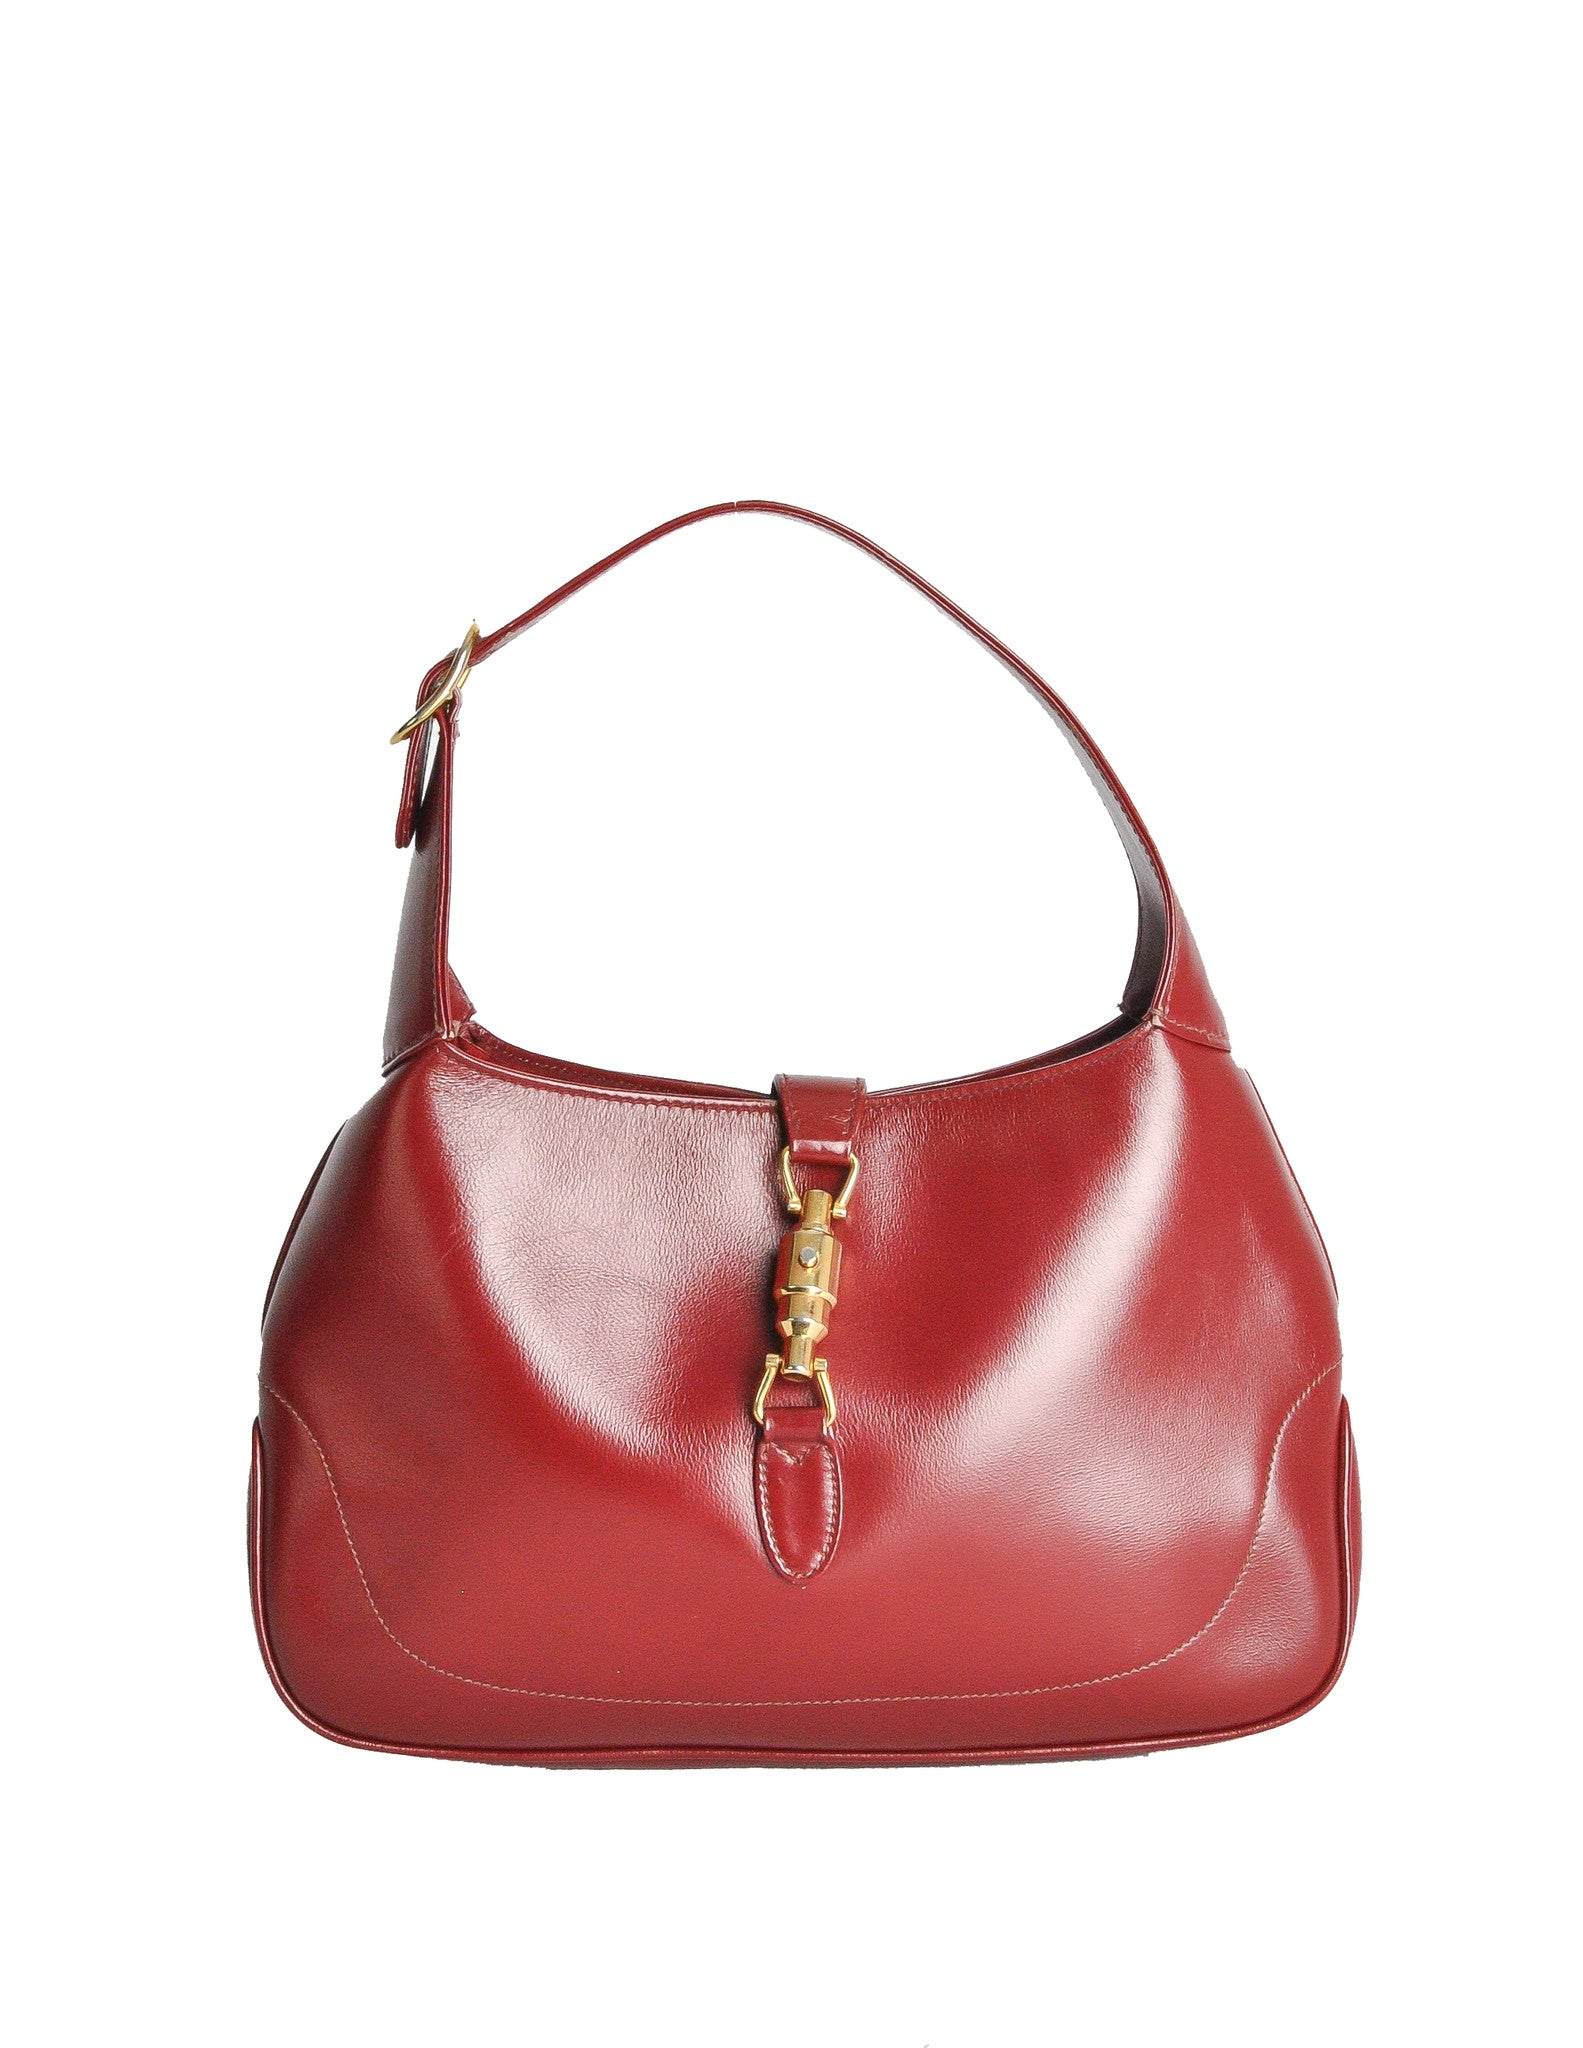 6b18bc6746dd5e Very Gucci Vintage 1960s Maroon Jackie O Handbag - from Amarcord UM86